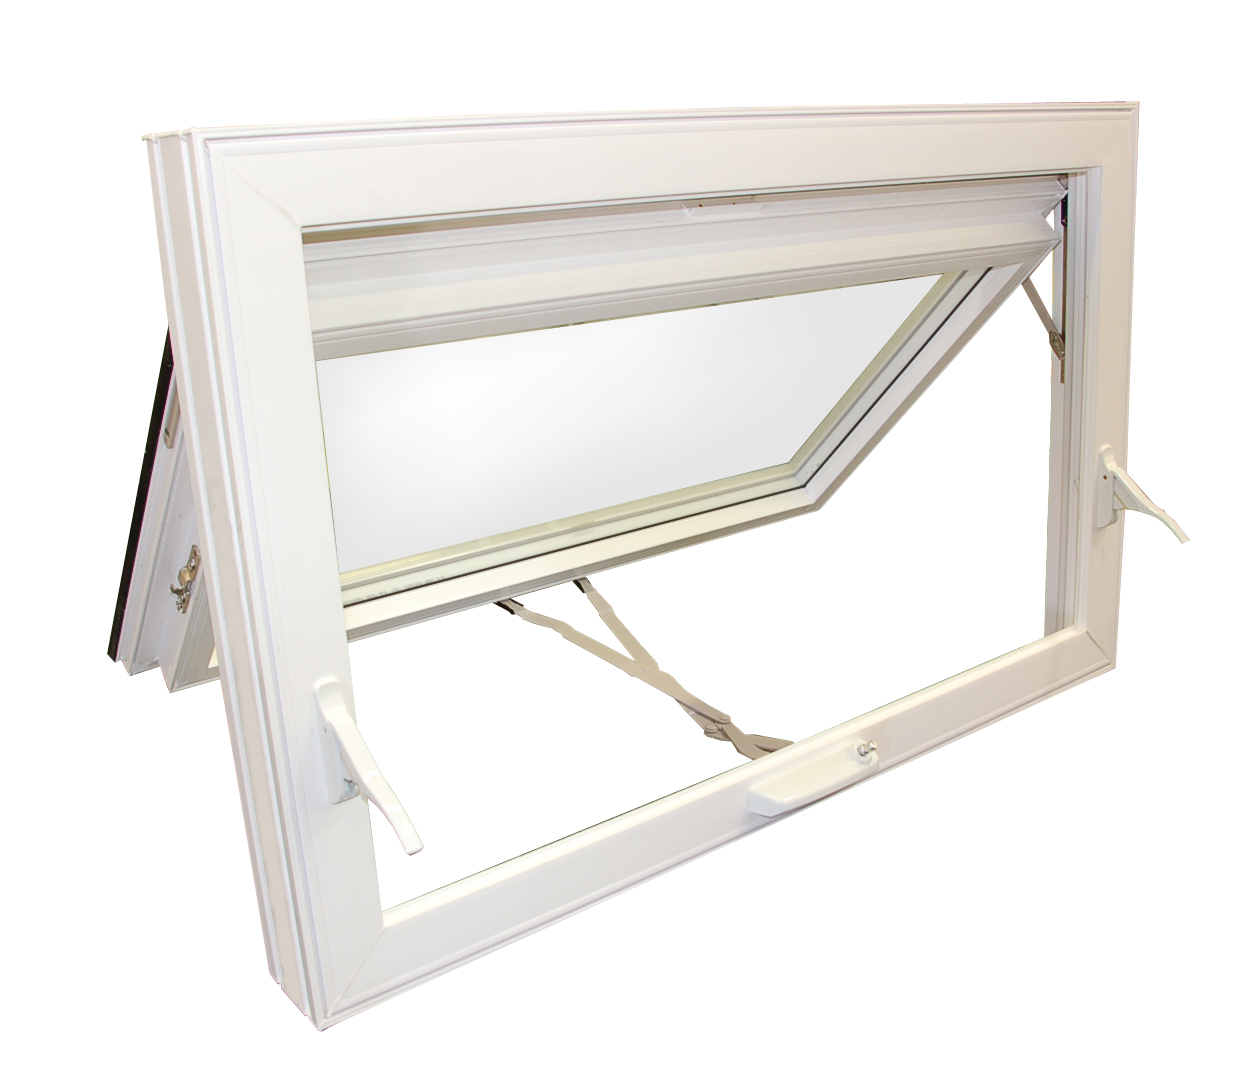 Awning Windows at Home Doctor.net - Home Remodeling  Home Repair